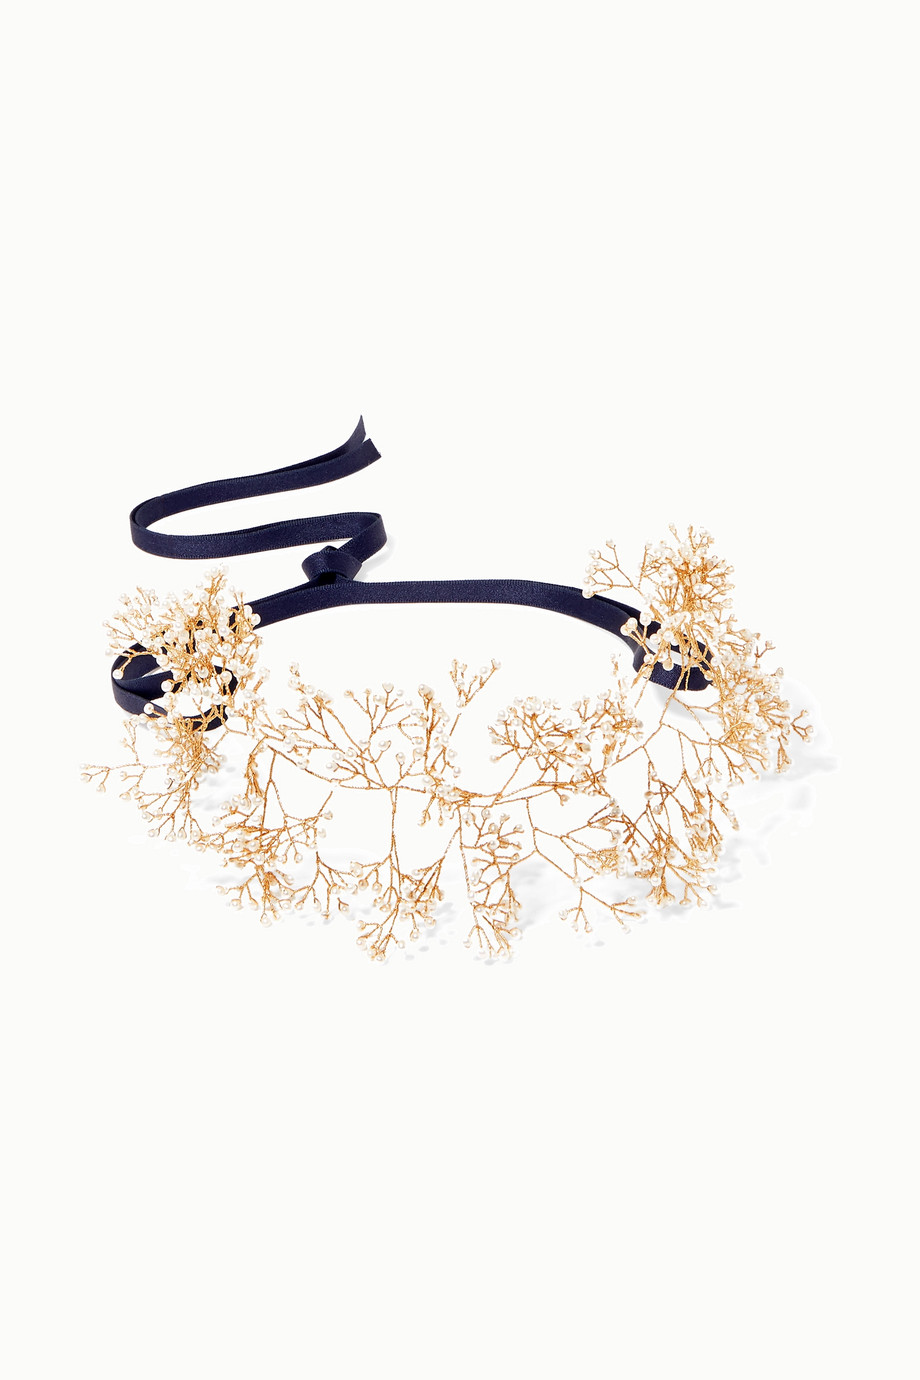 14 / Quatorze Baby's Breath gold-tone pearl headband